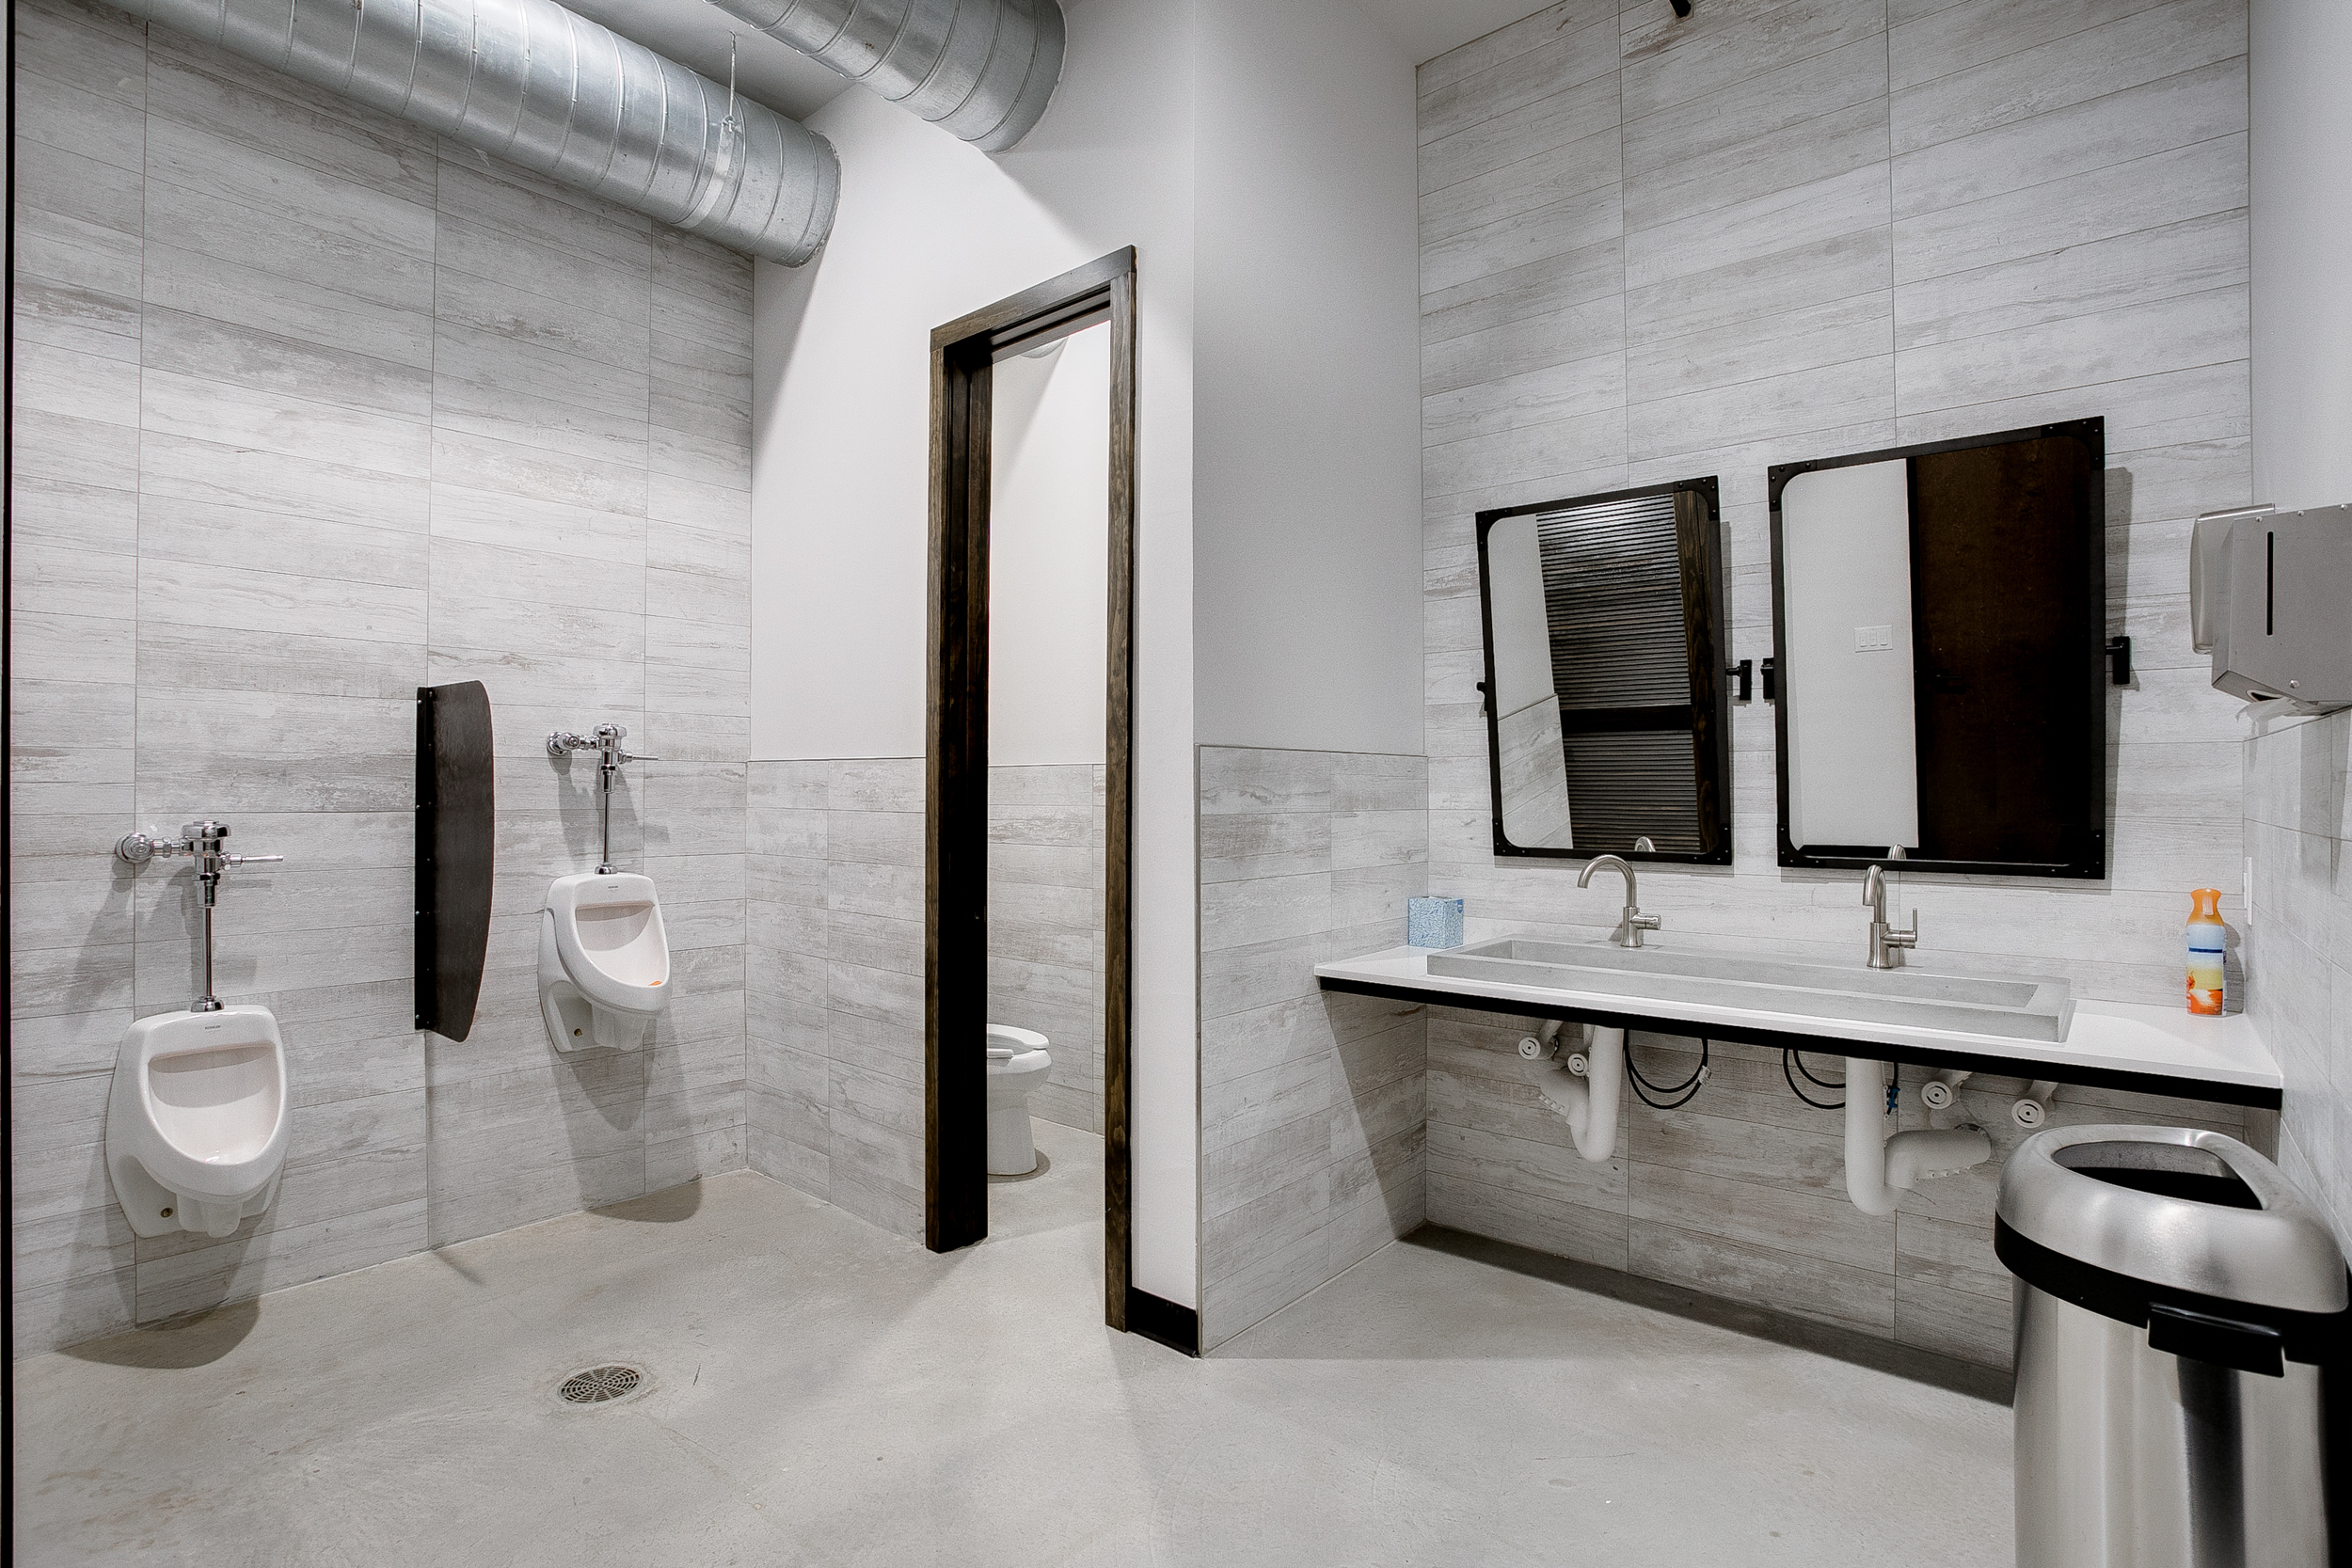 View of the men's restroom inside of 105 Nursery Lane with grey tiled floors and walls, a sink, wooden mirrors, and urinals